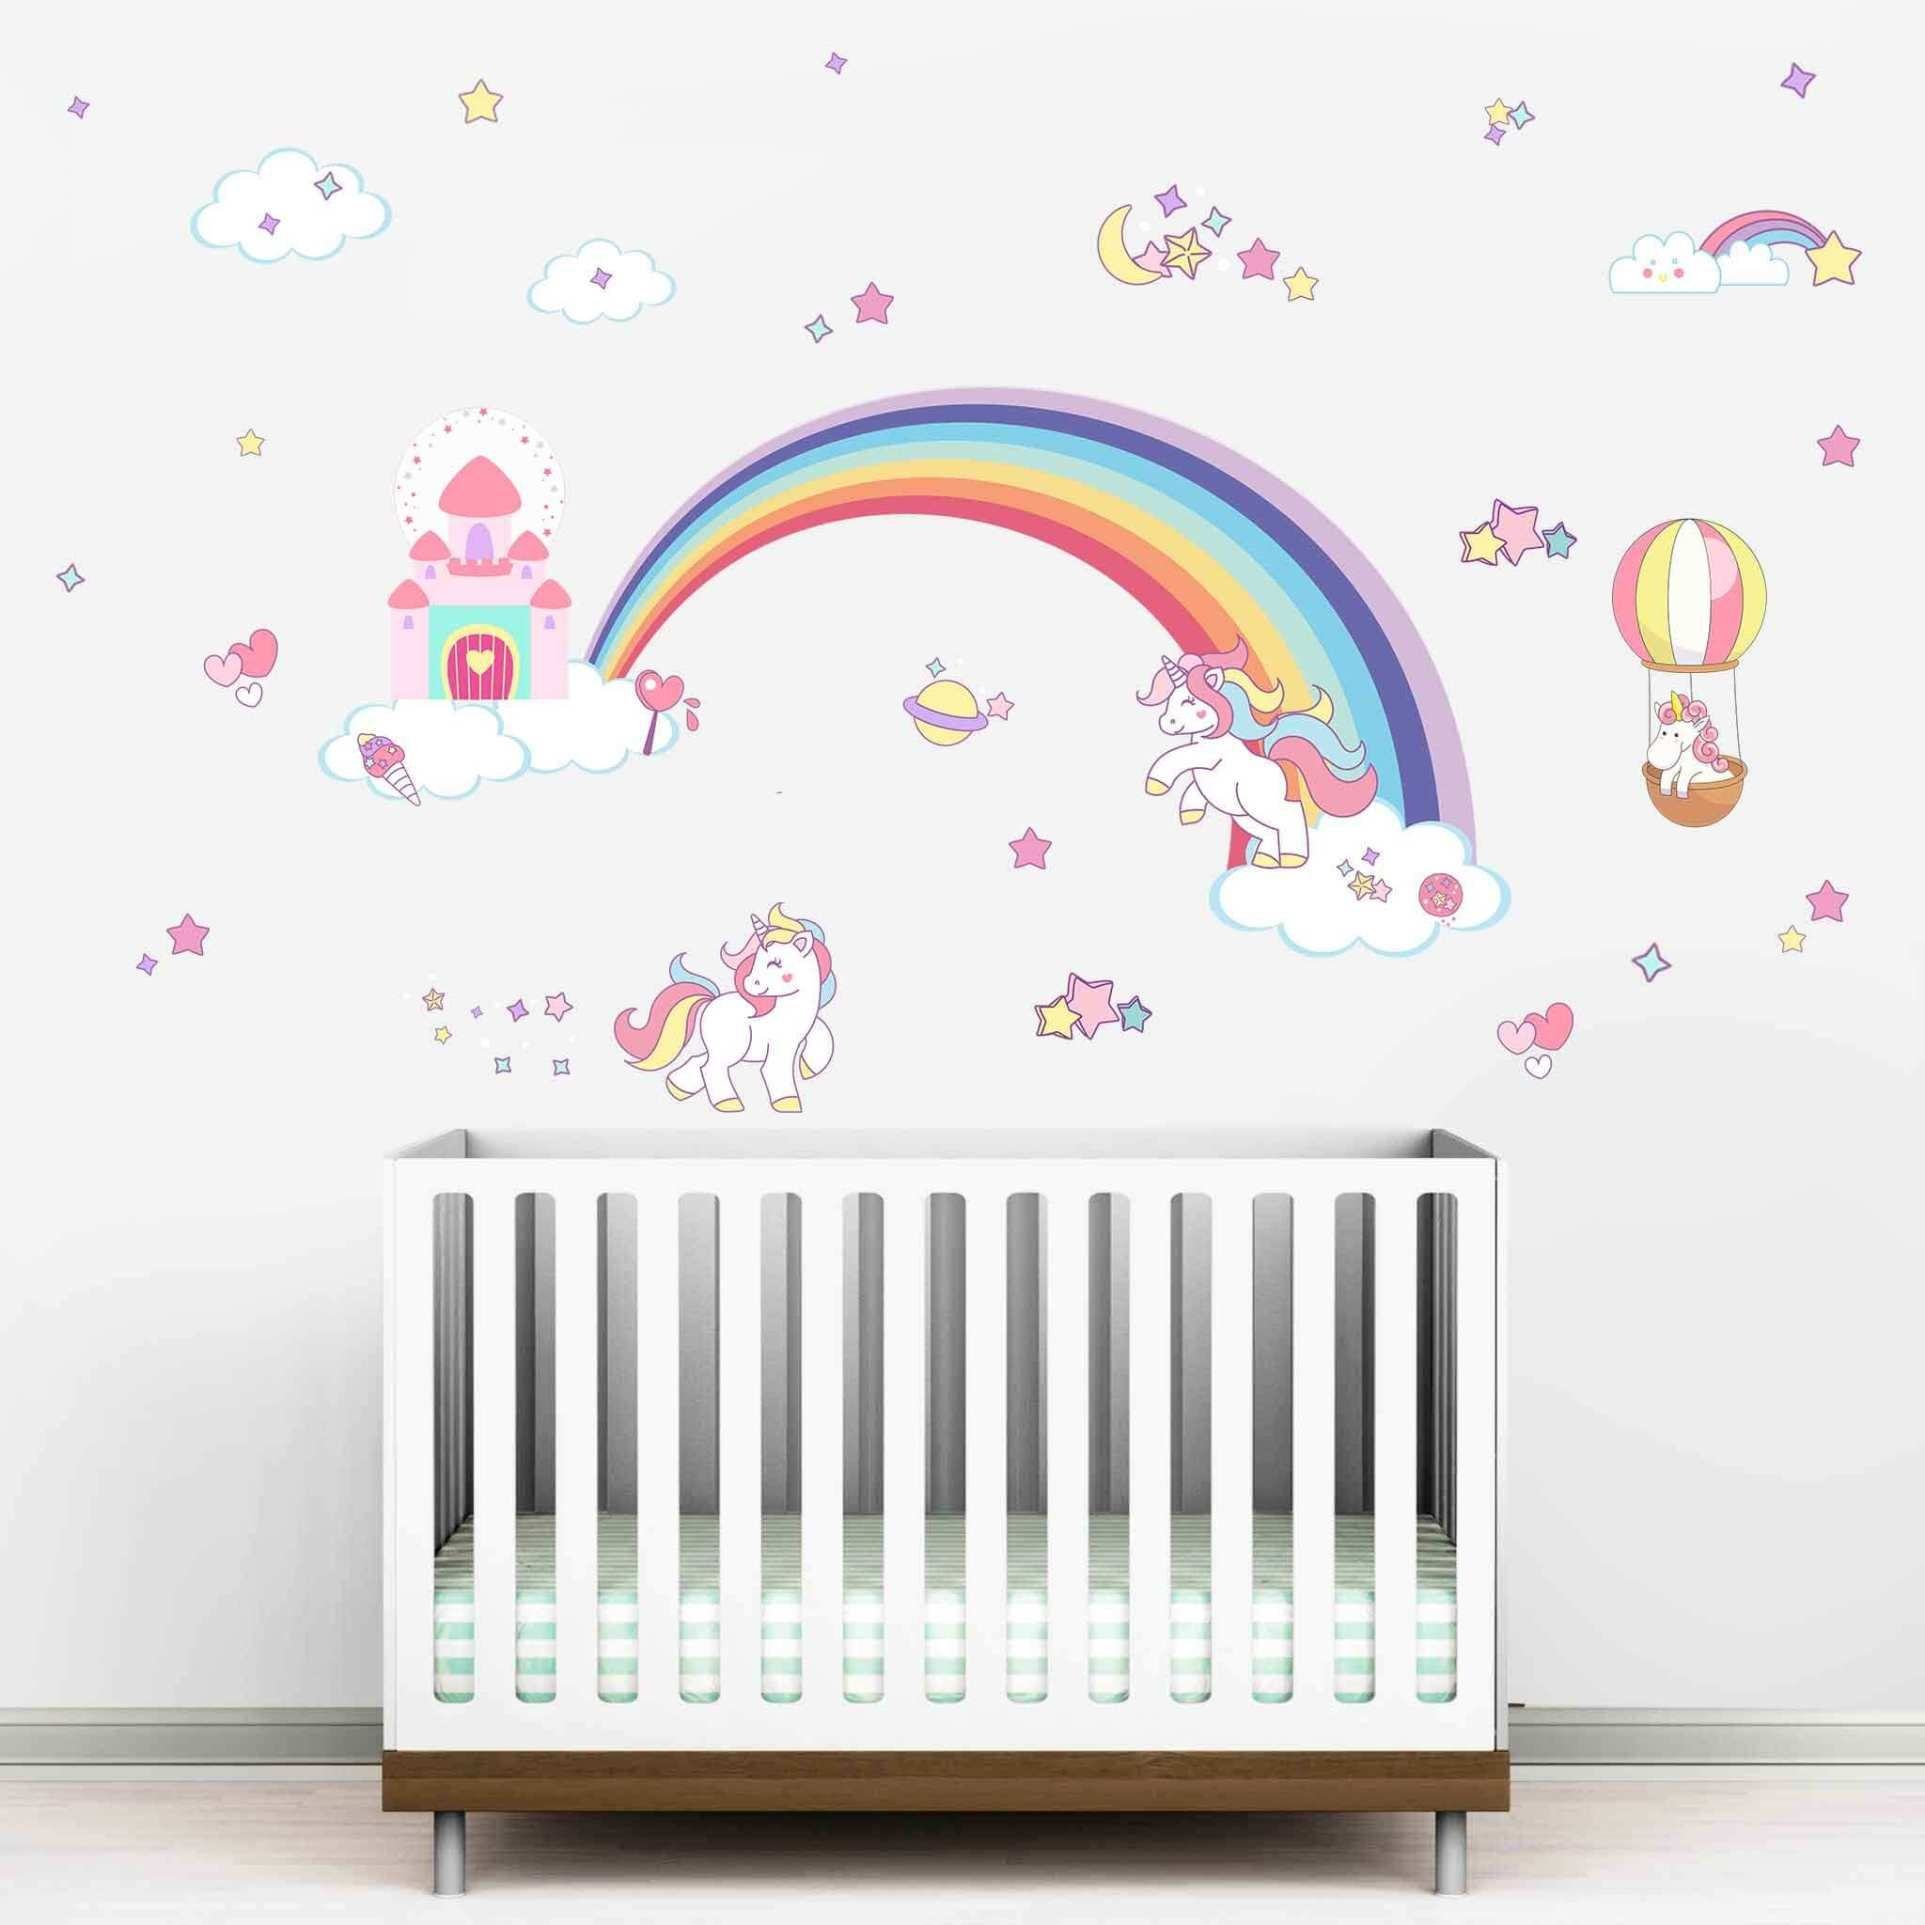 Get Unicorn Wall Stickers For Kids Room Browse Latest Decorative